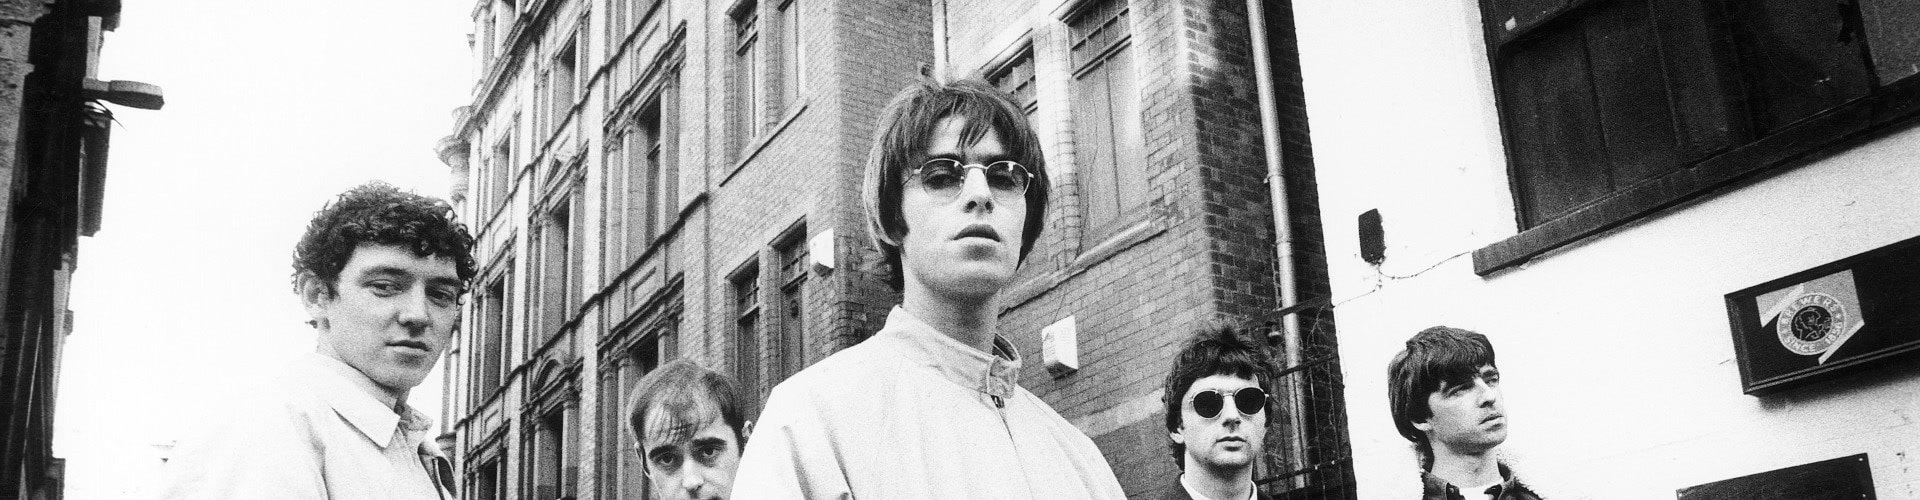 Watch Oasis: There We Were, Now... Online